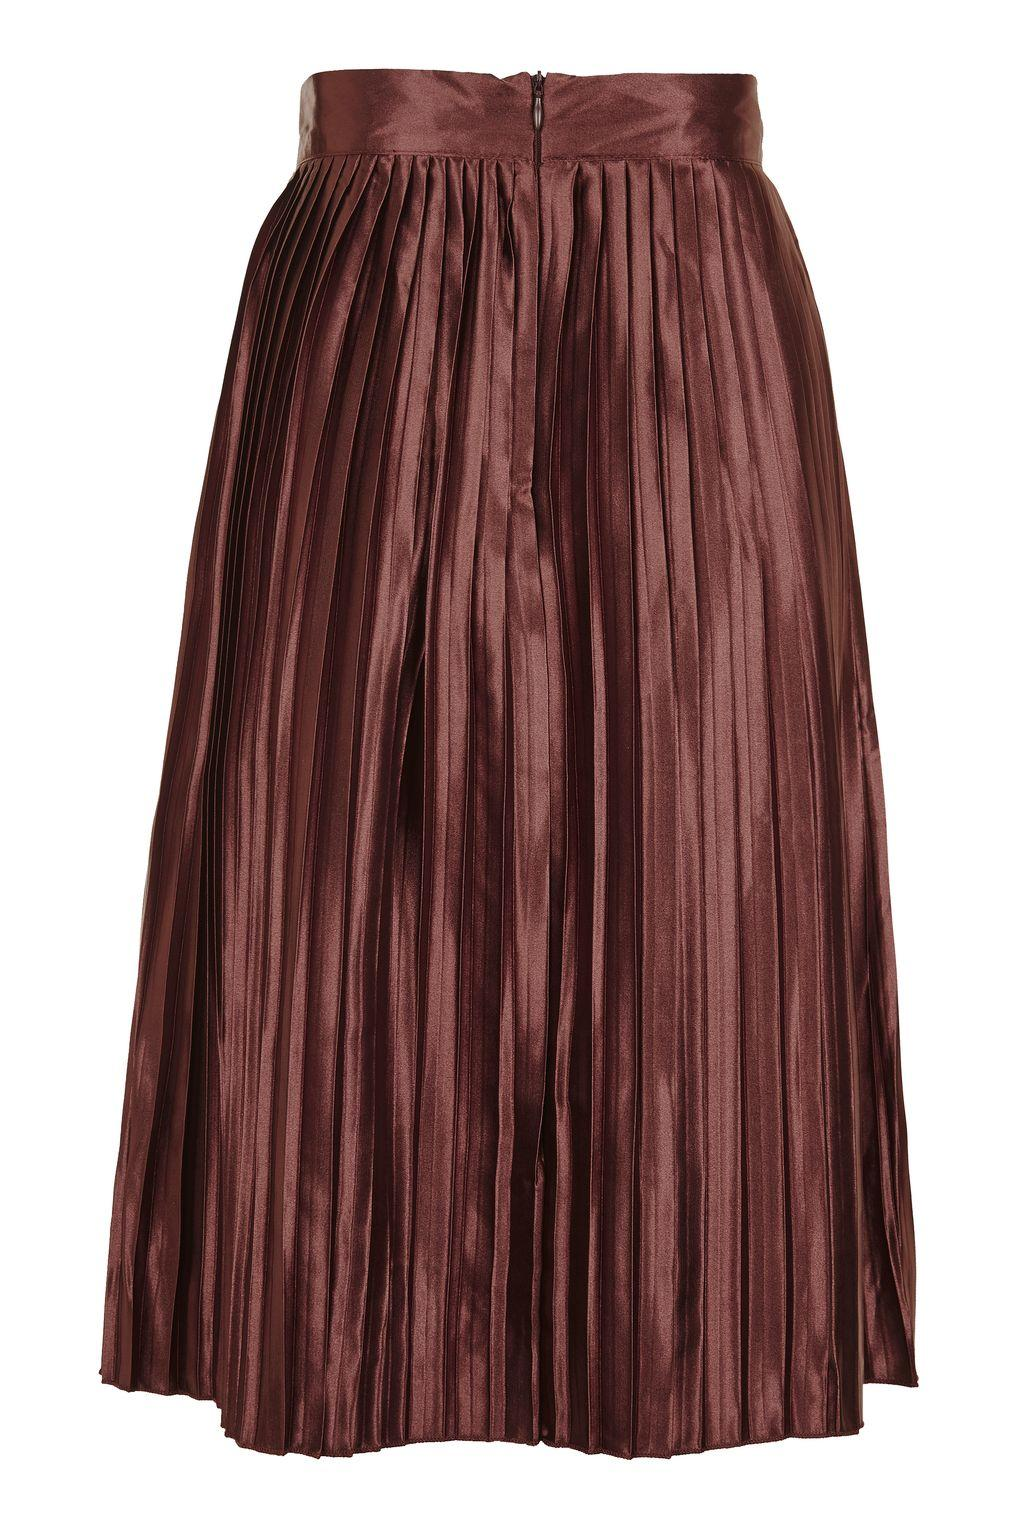 topshop high waisted pleated skirt by glamorous petites lyst